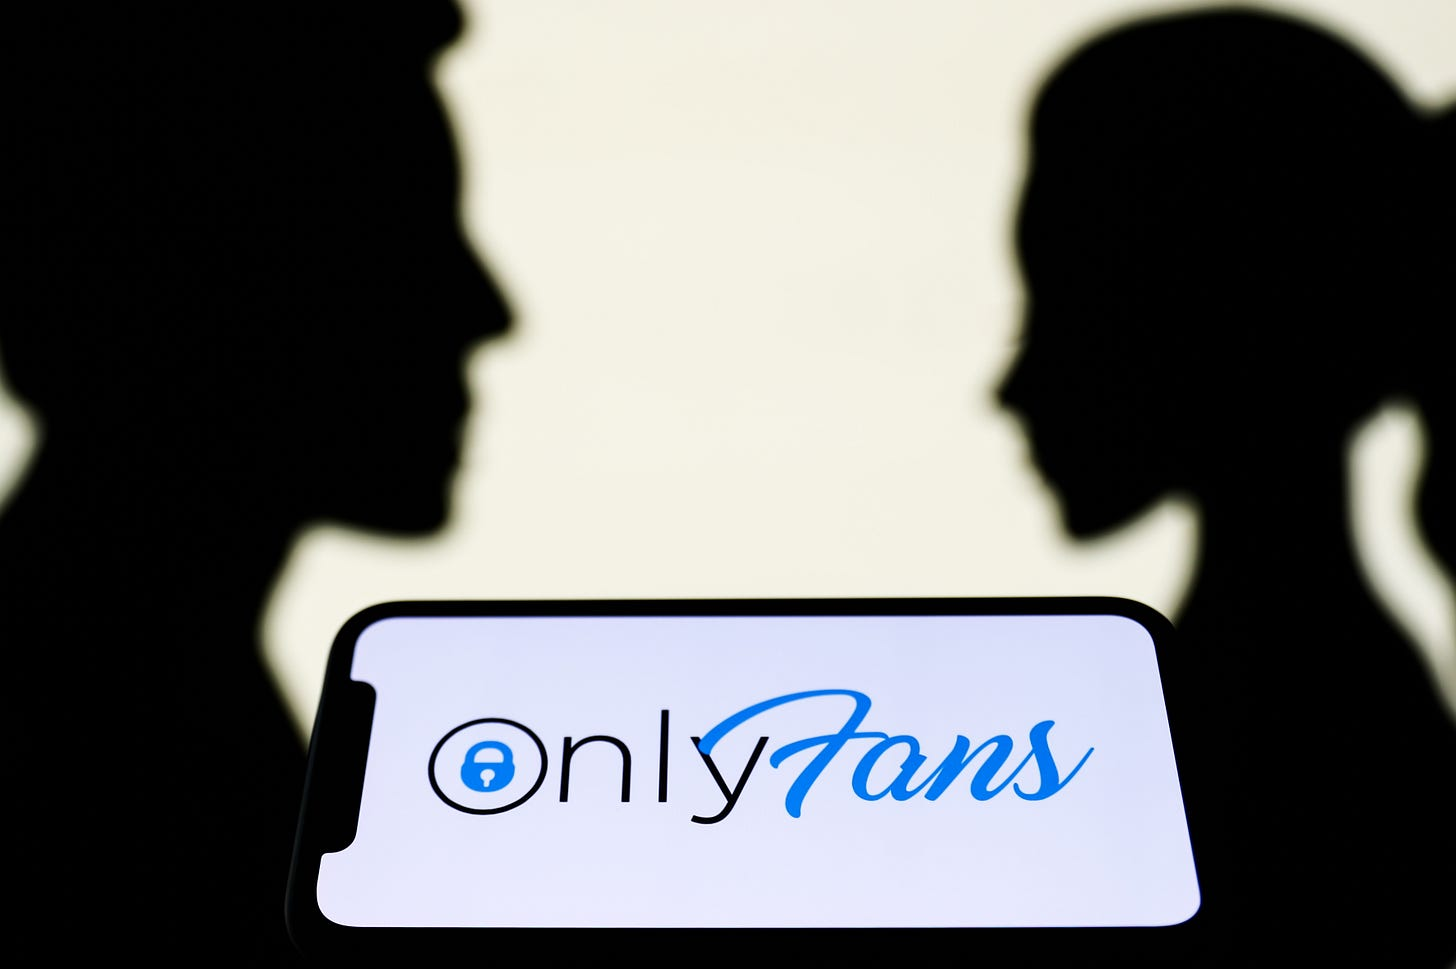 OnlyFans logo displayed on a phone screen is seen with paper silhouettes looking like a man and a woman in the background in this illustration photo taken in Krakow, Poland on August 25, 2021. (Photo by Jakub Porzycki/NurPhoto via Getty Images)